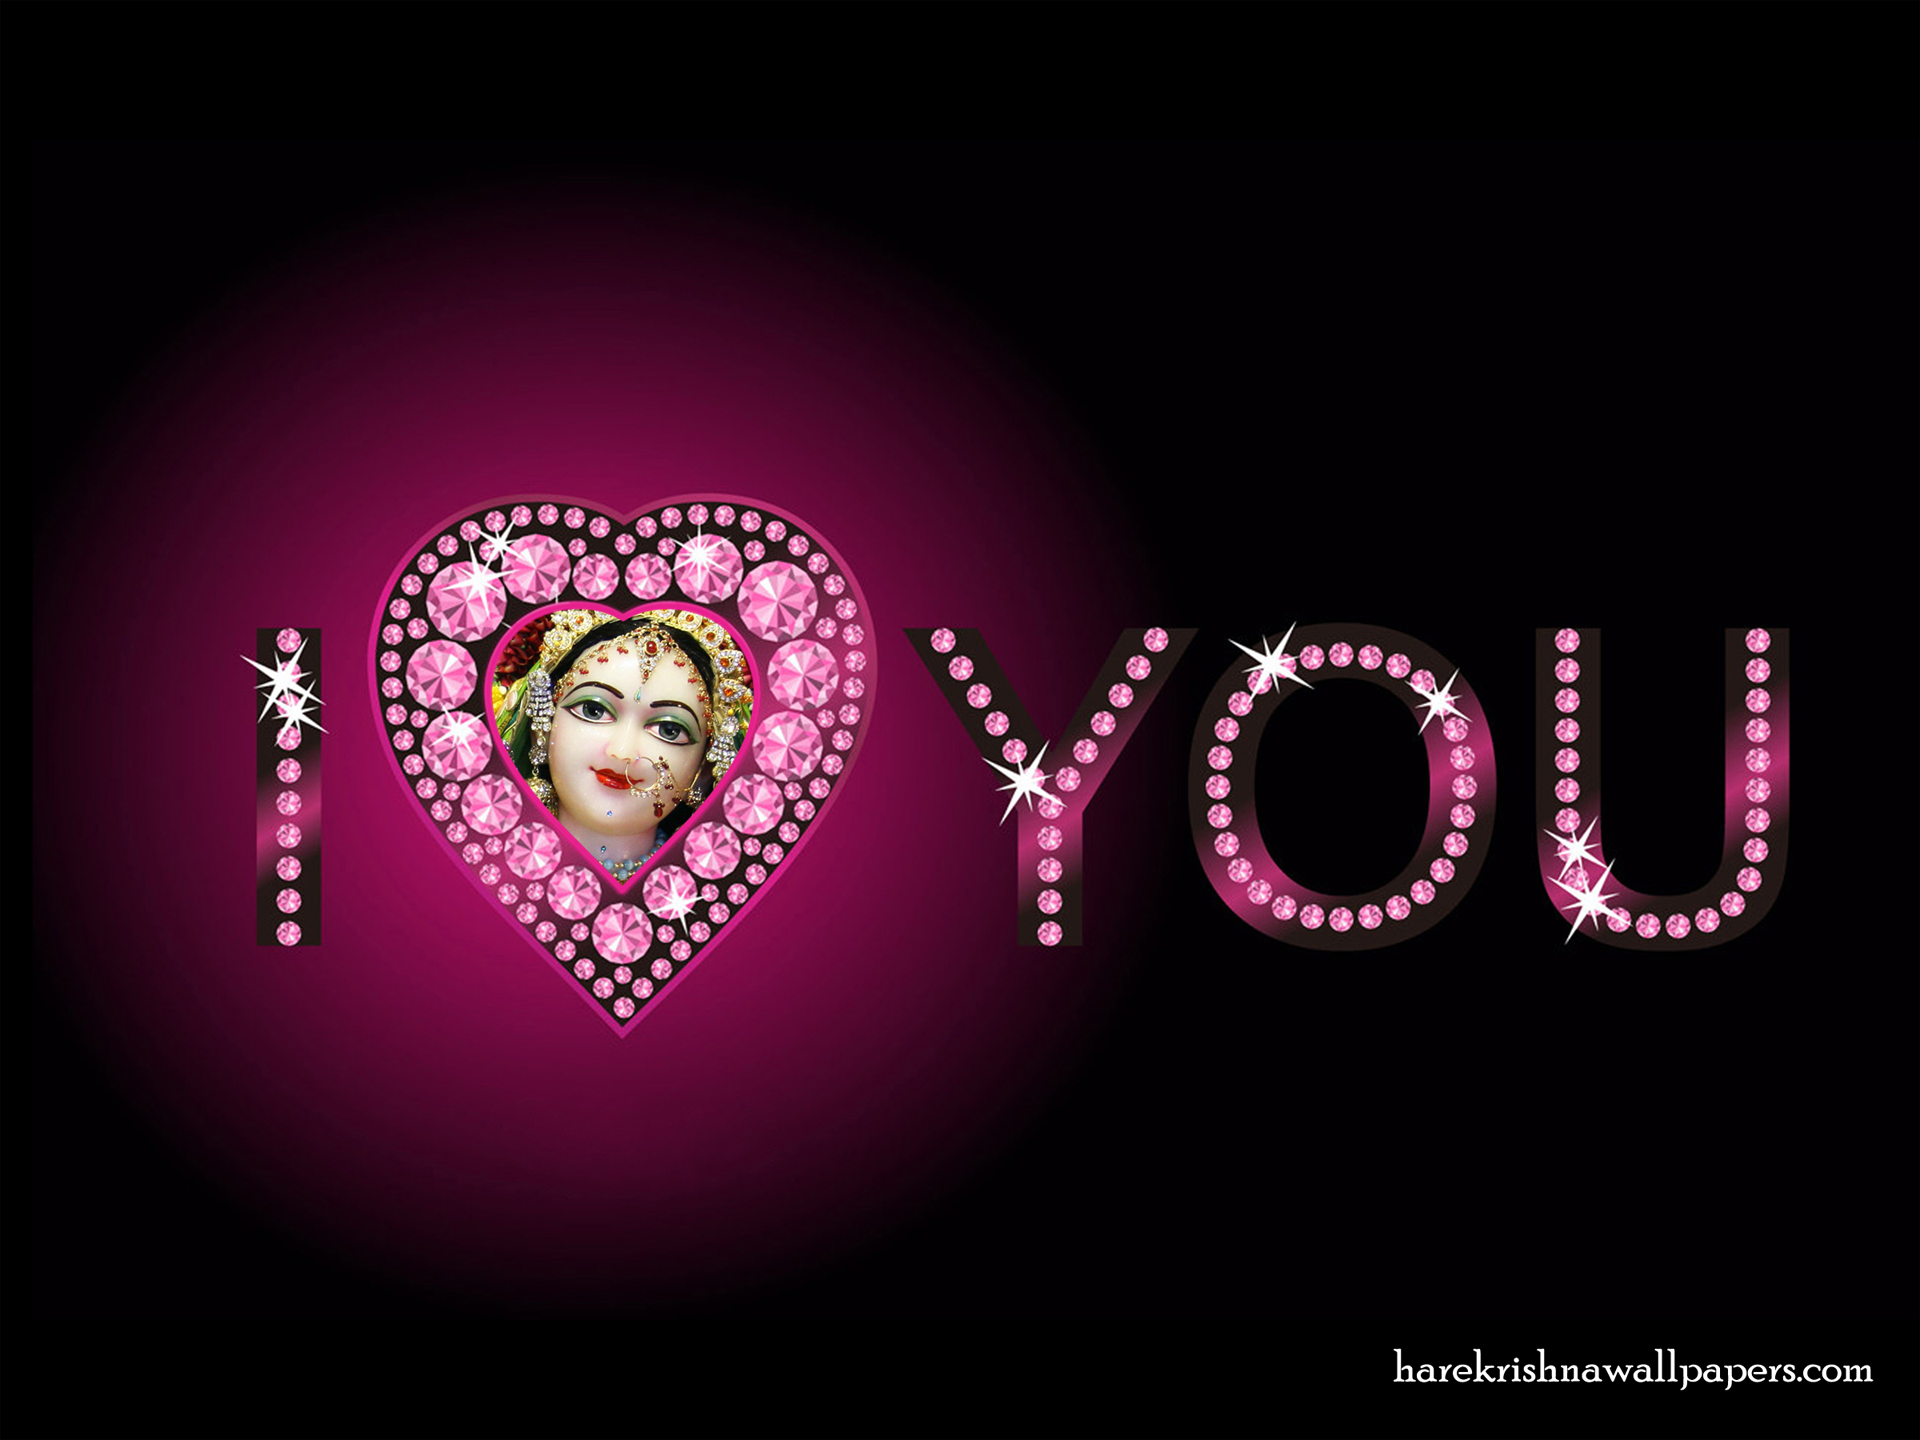 I Love You Radharani Wallpaper (015) Size 1920x1440 Download